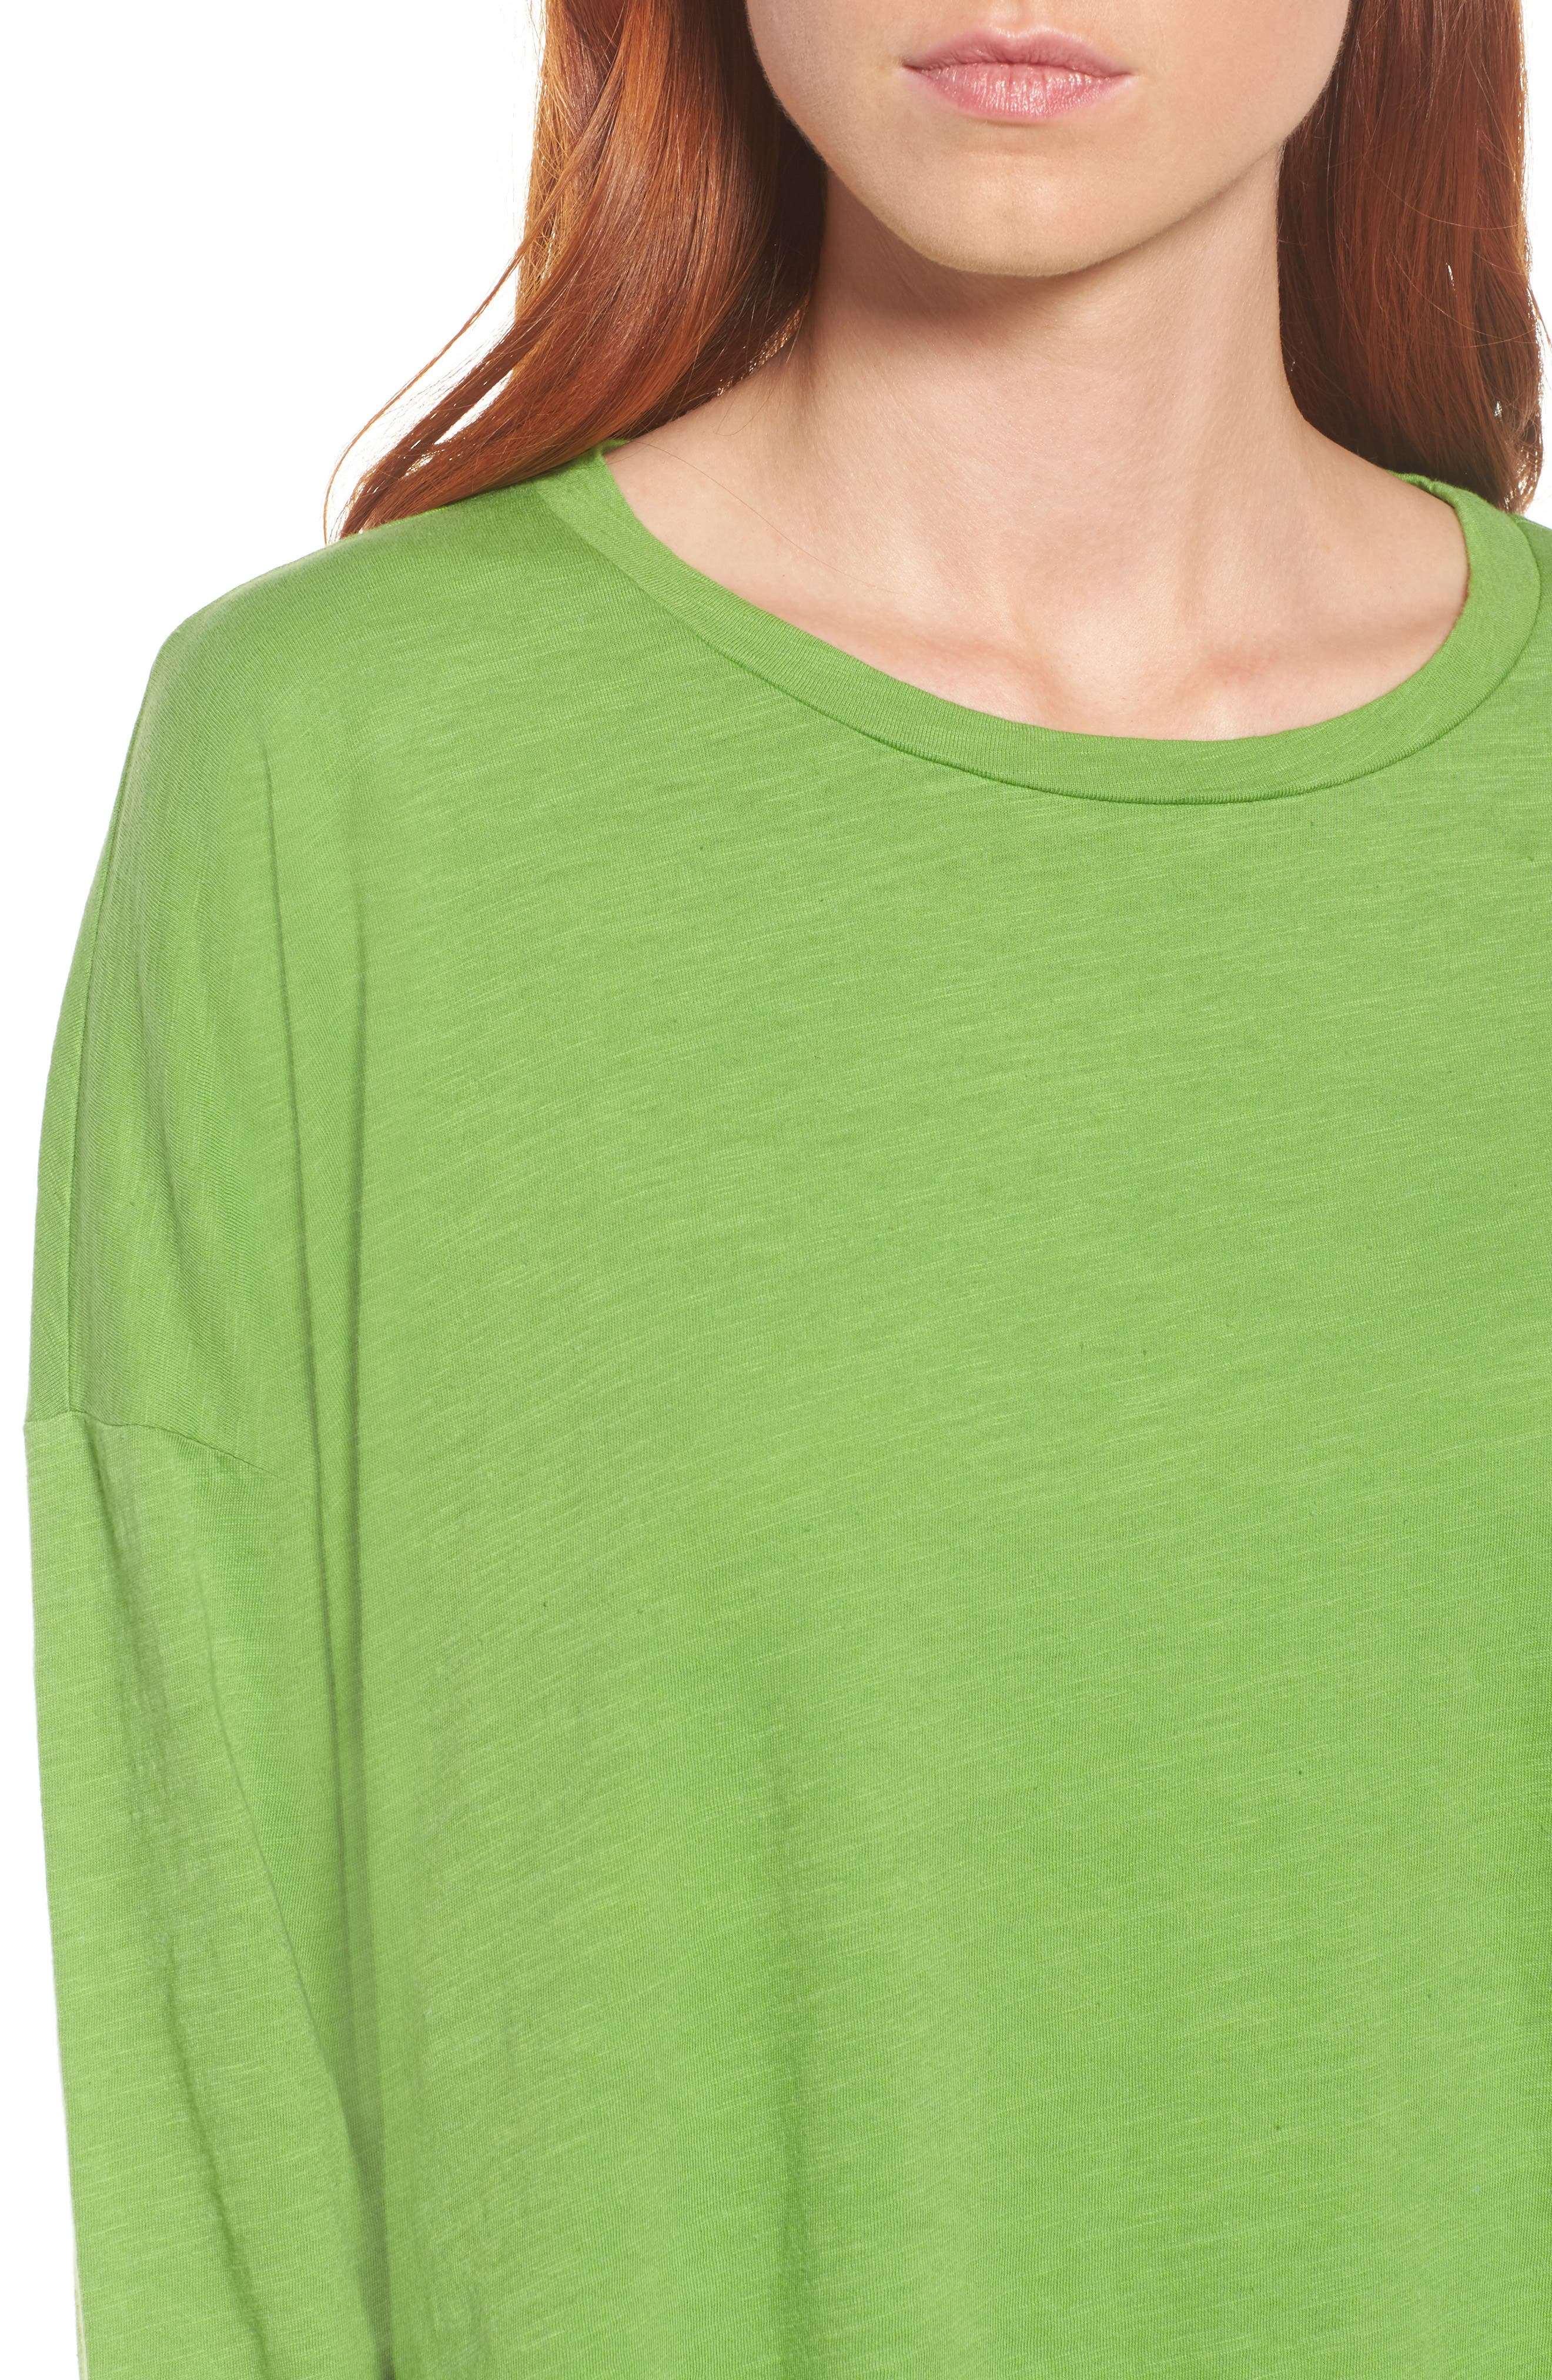 Organic Cotton Knit Top,                             Alternate thumbnail 4, color,                             Apple